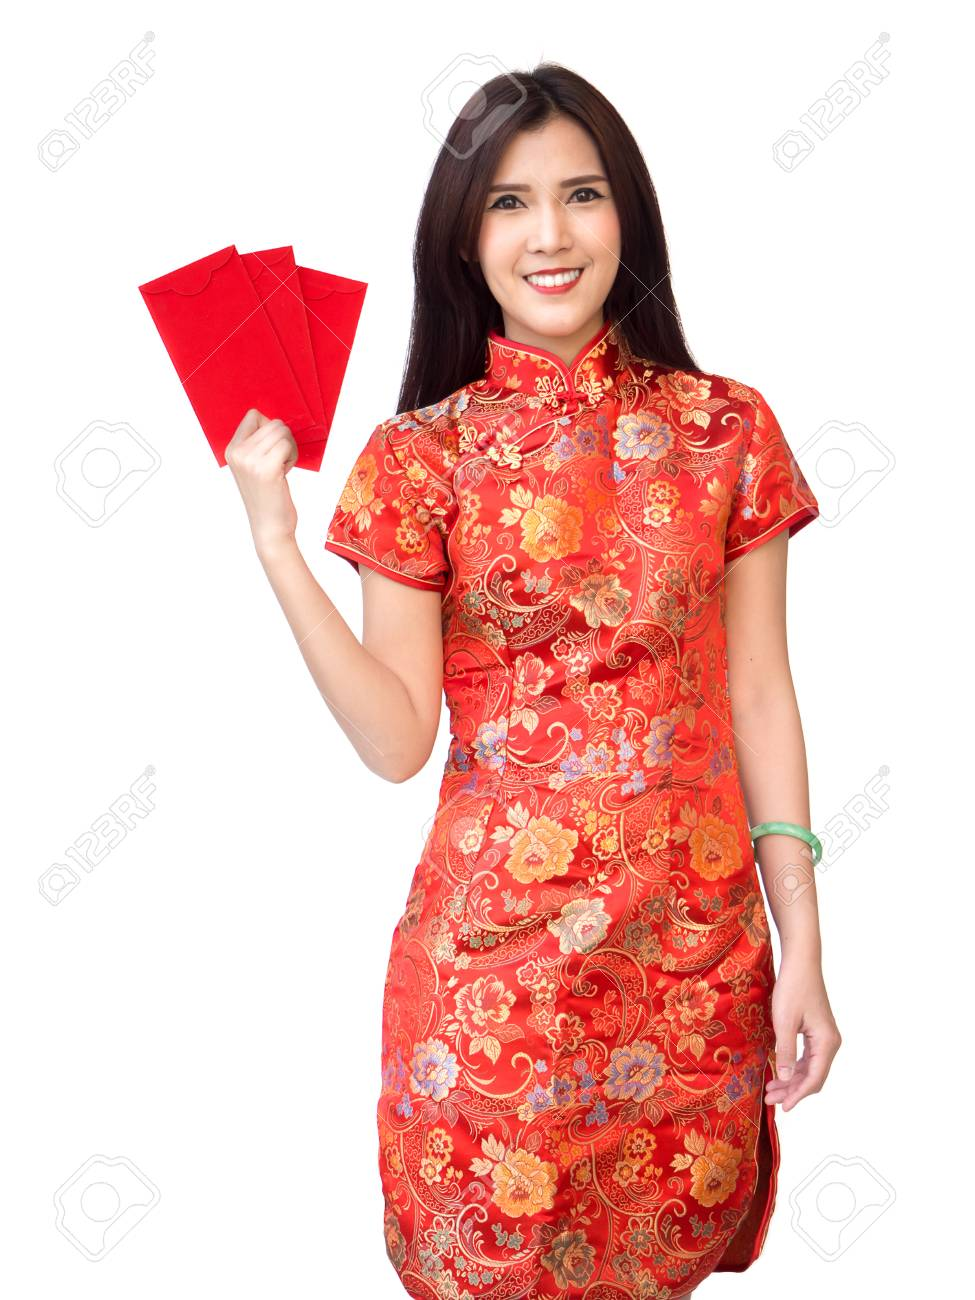 054672b31 Chinese new year woman concept, isolated asian woman wearing red dress  Cheongsam holding money gift